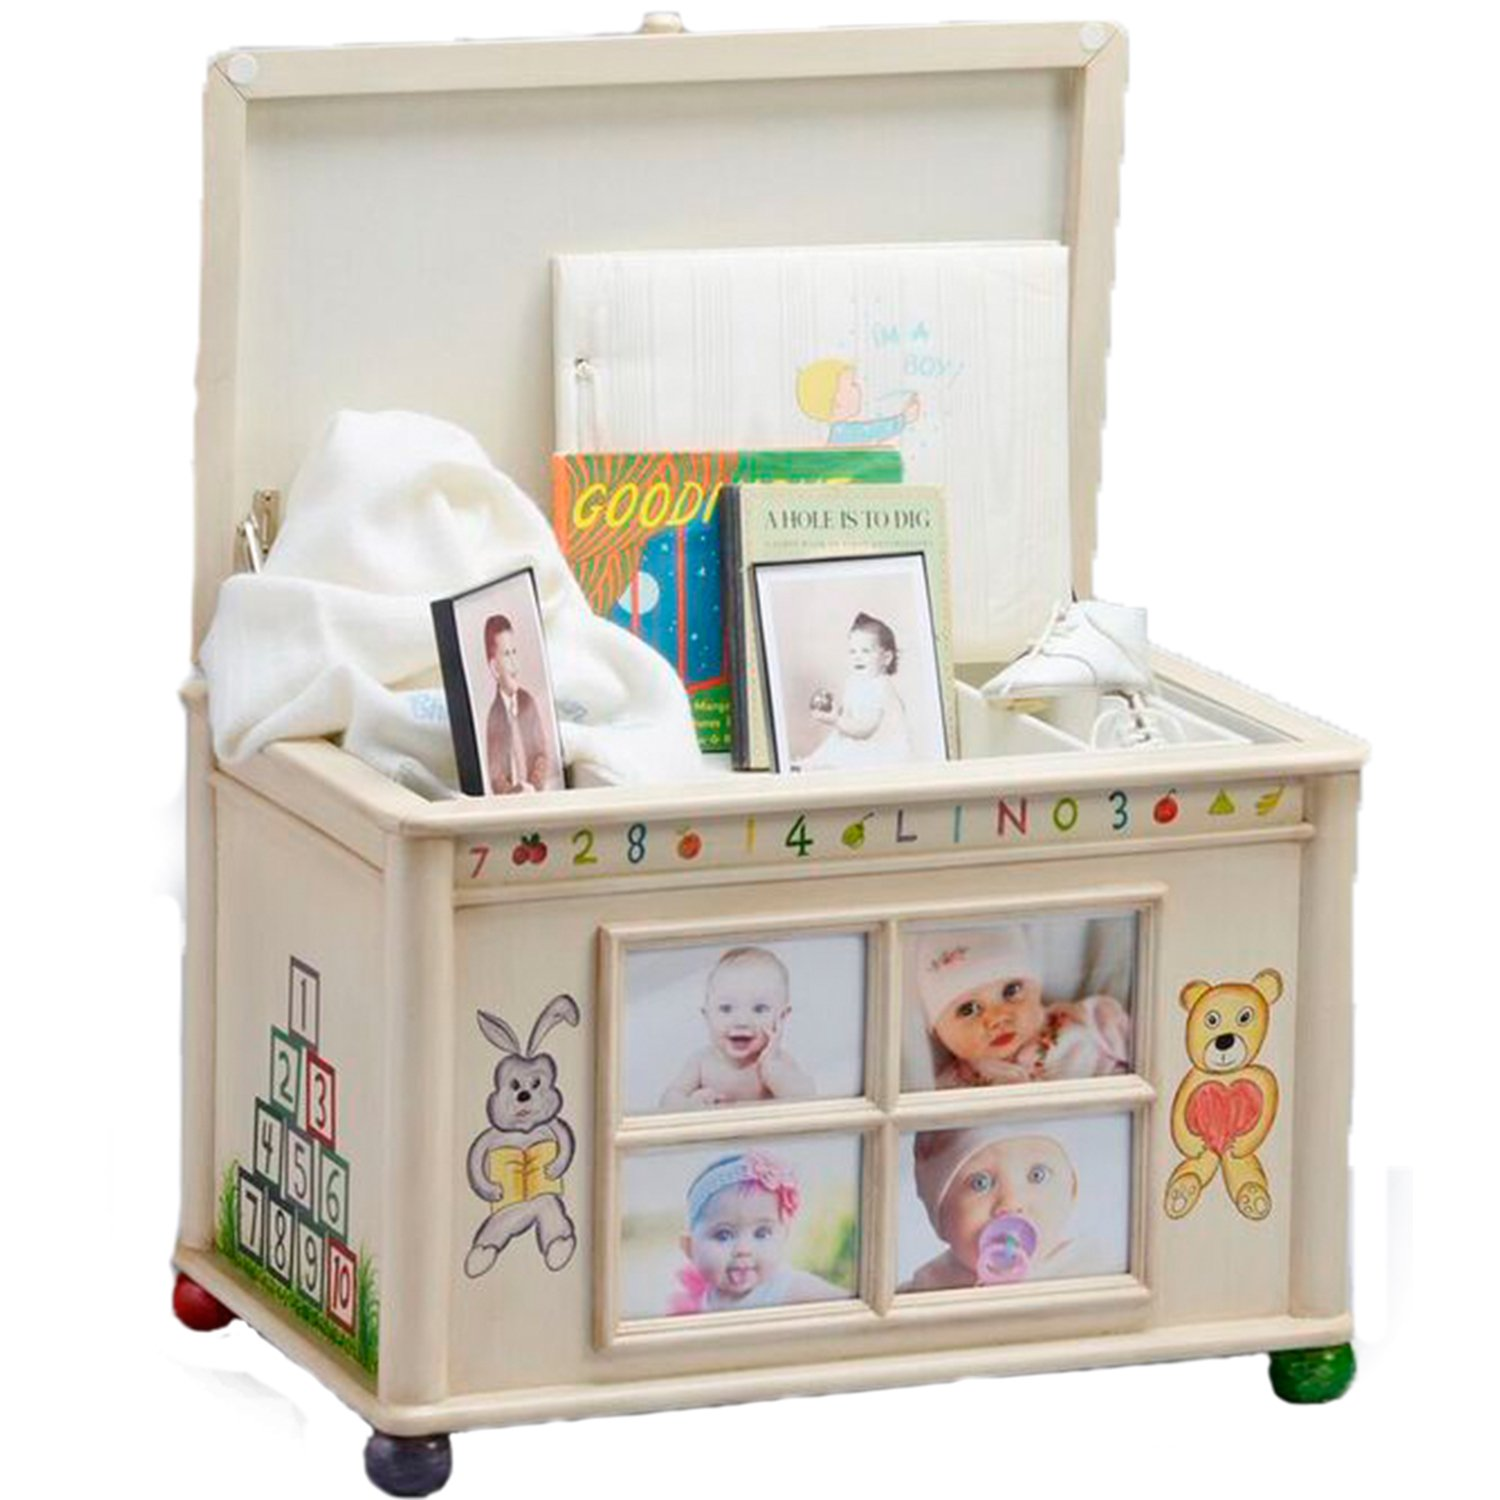 The Life Chest 123135 Children's Toy Box